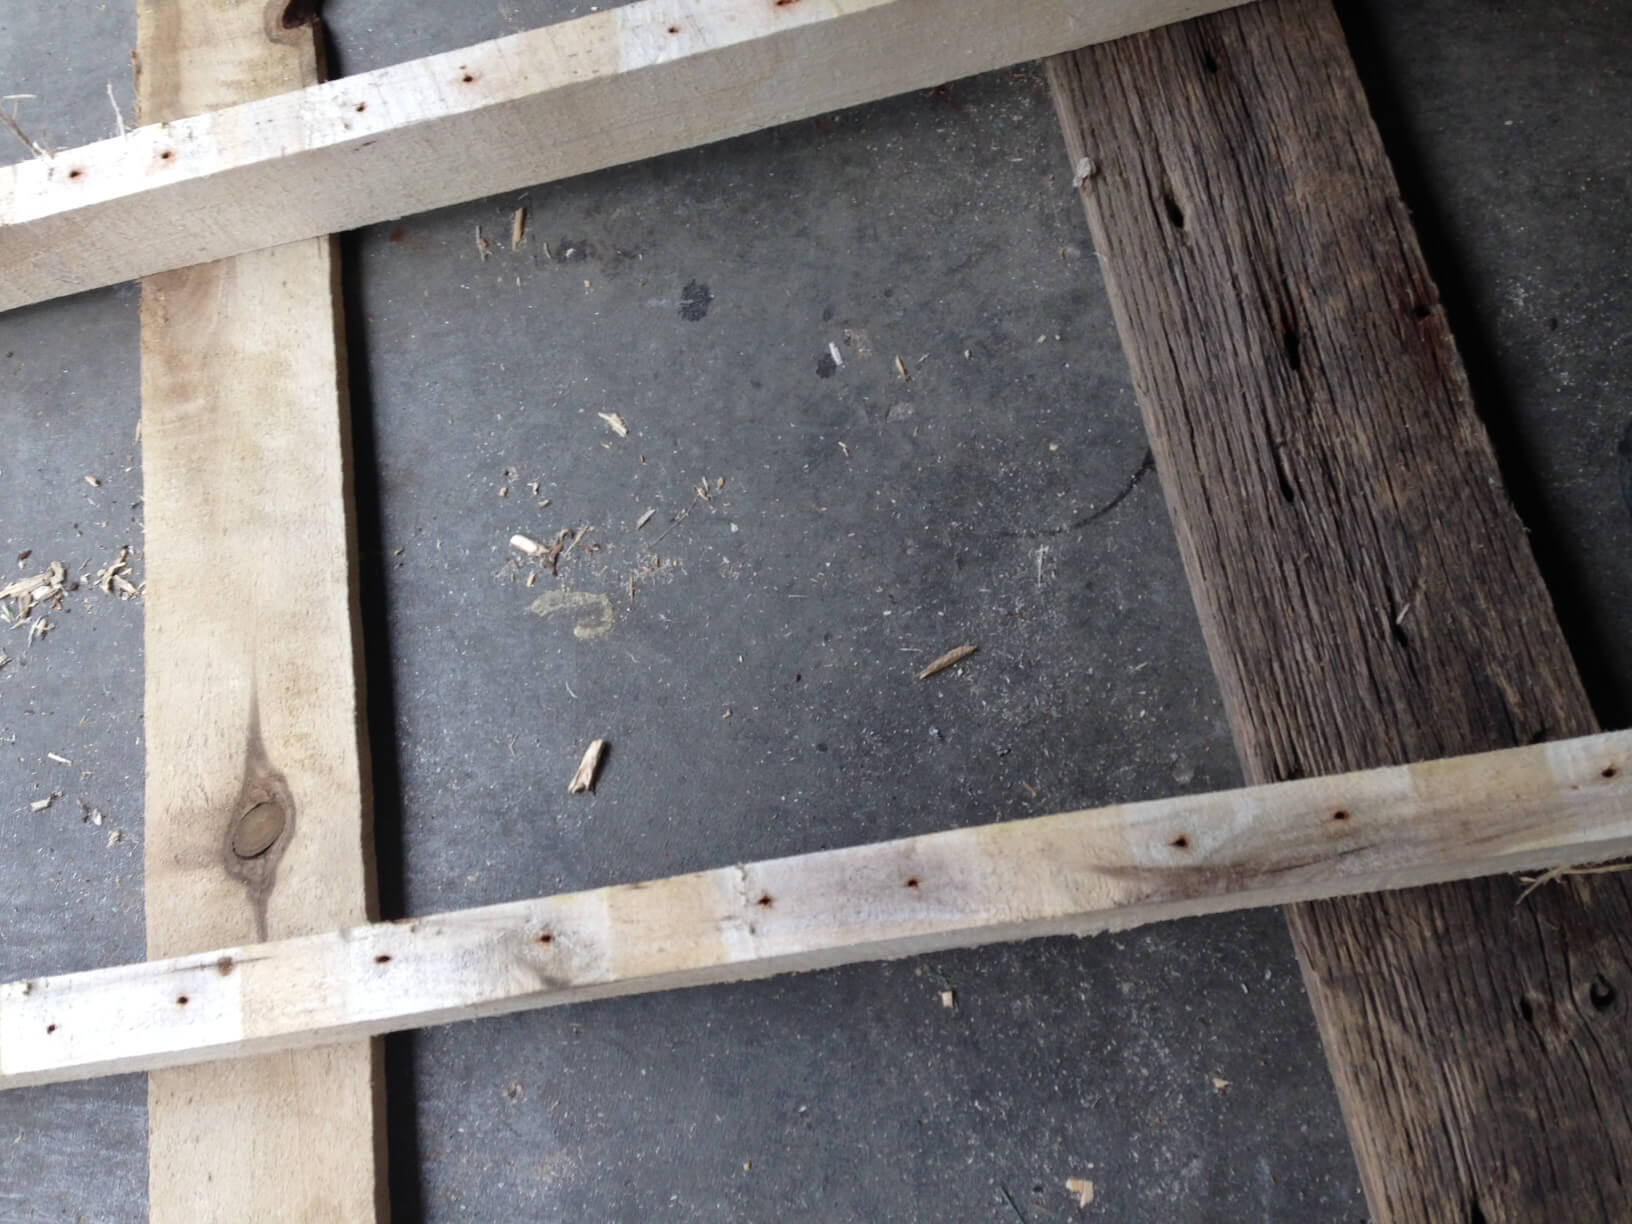 Cutting small pieces from the pallet